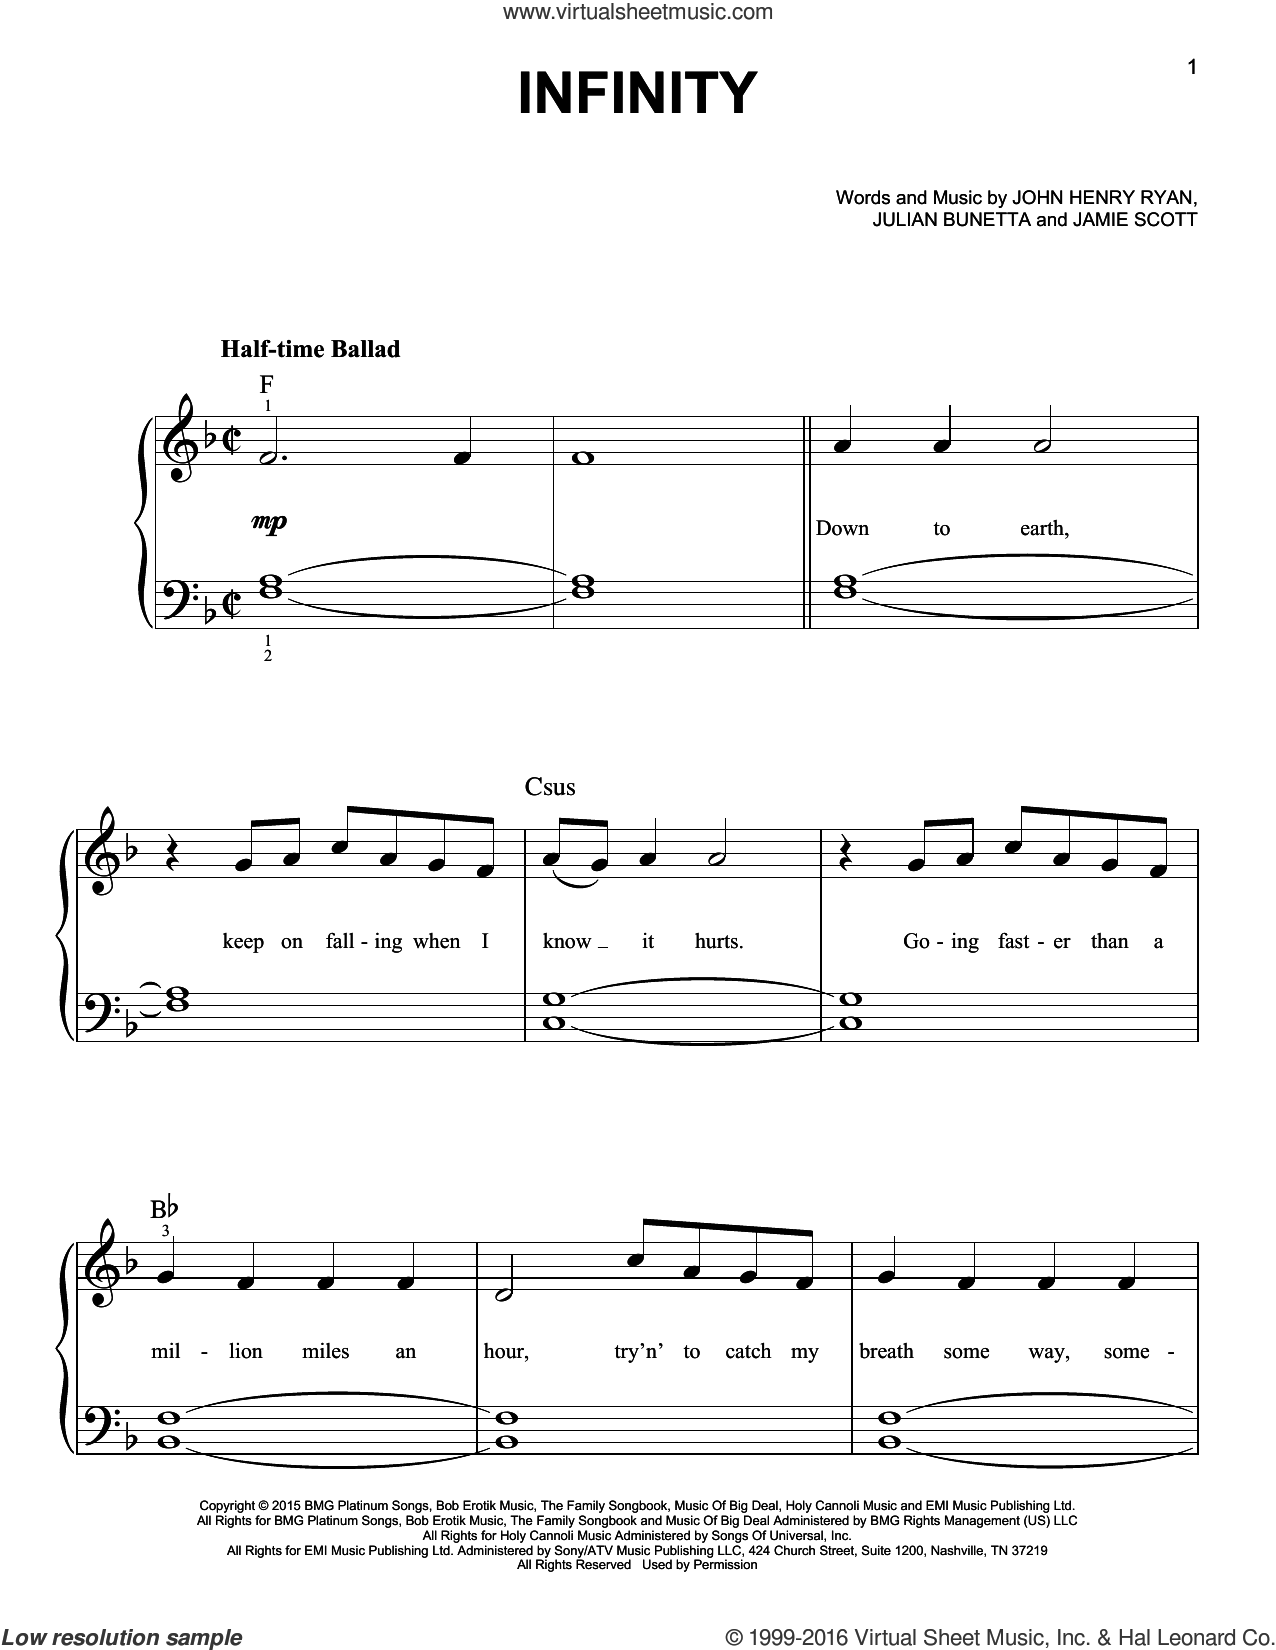 Infinity sheet music for piano solo by One Direction, Jamie Scott, John Henry Ryan and Julian Bunetta, easy skill level